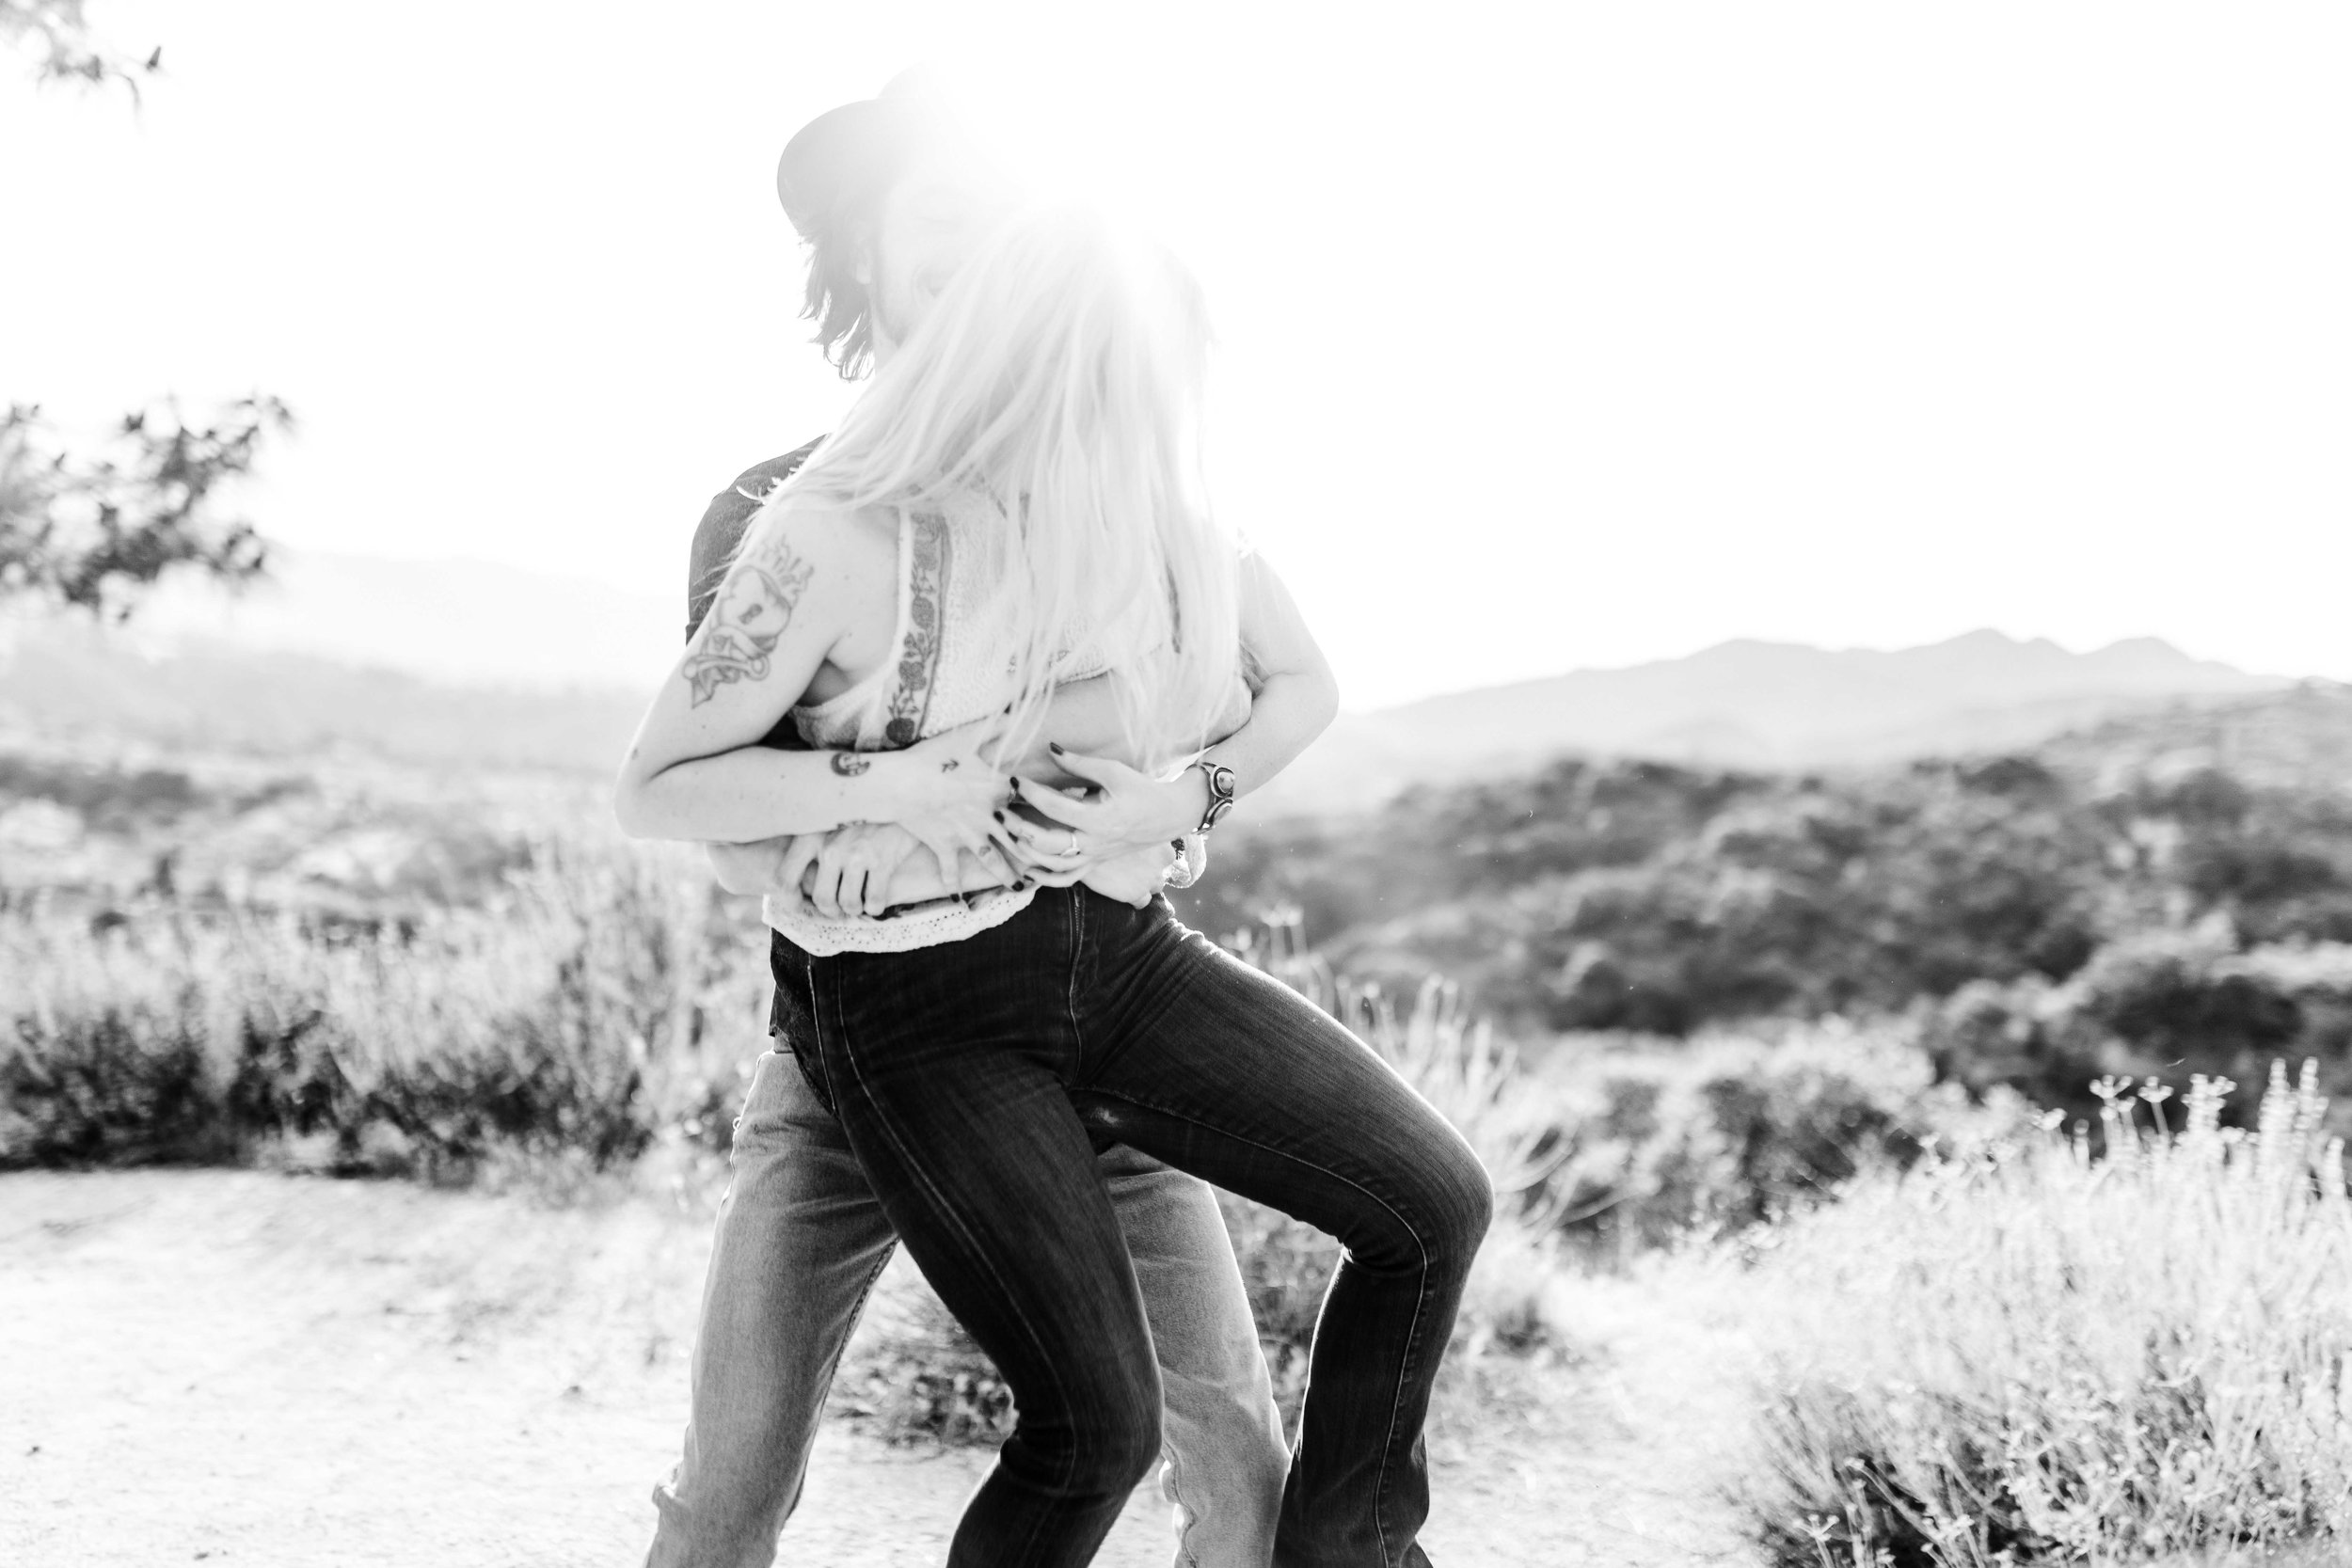 Tara&Will-Clarisse-Rae-Photo-&-Video-Southern-California-Wedding-Photographer-&-Videographer-Los-Angeles-Engagement-Session_9